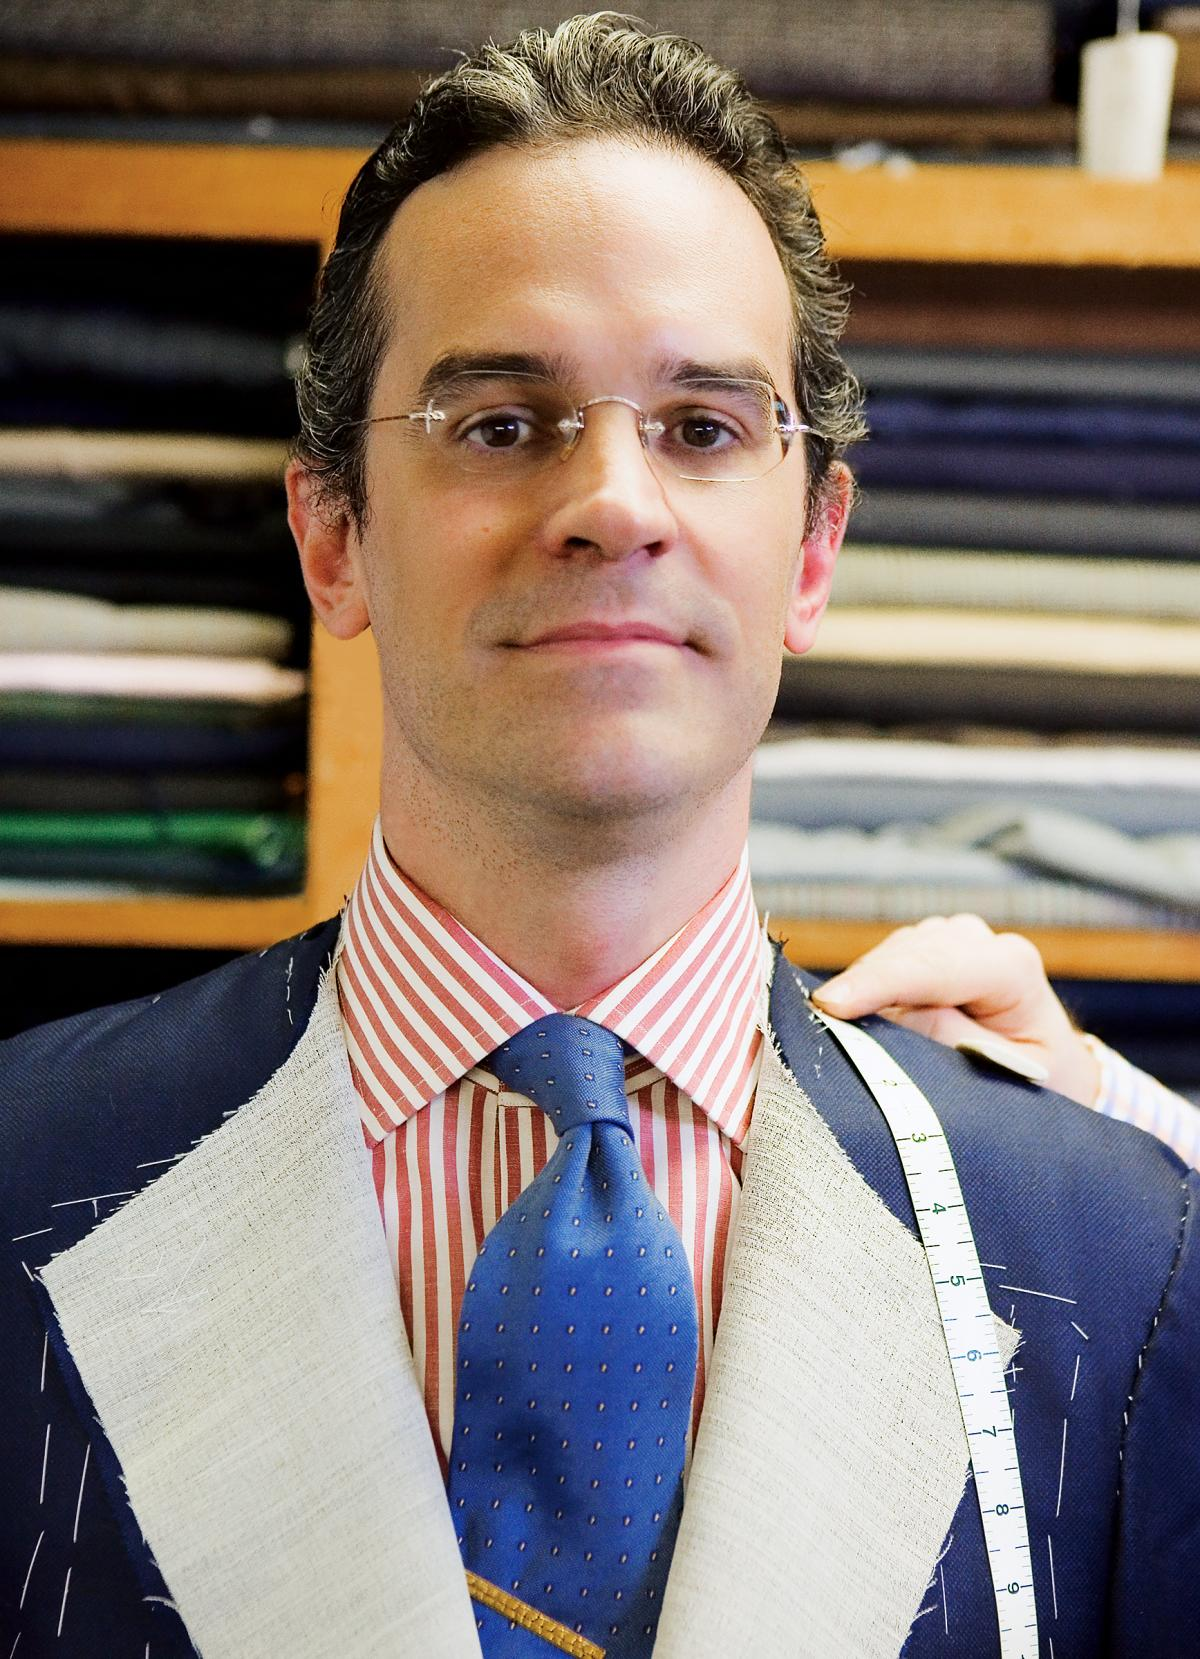 Anton looks directly at the camera while getting measured for a new, navy blue suit, which he wears over a red and white striped shirt and cobalt blue tie